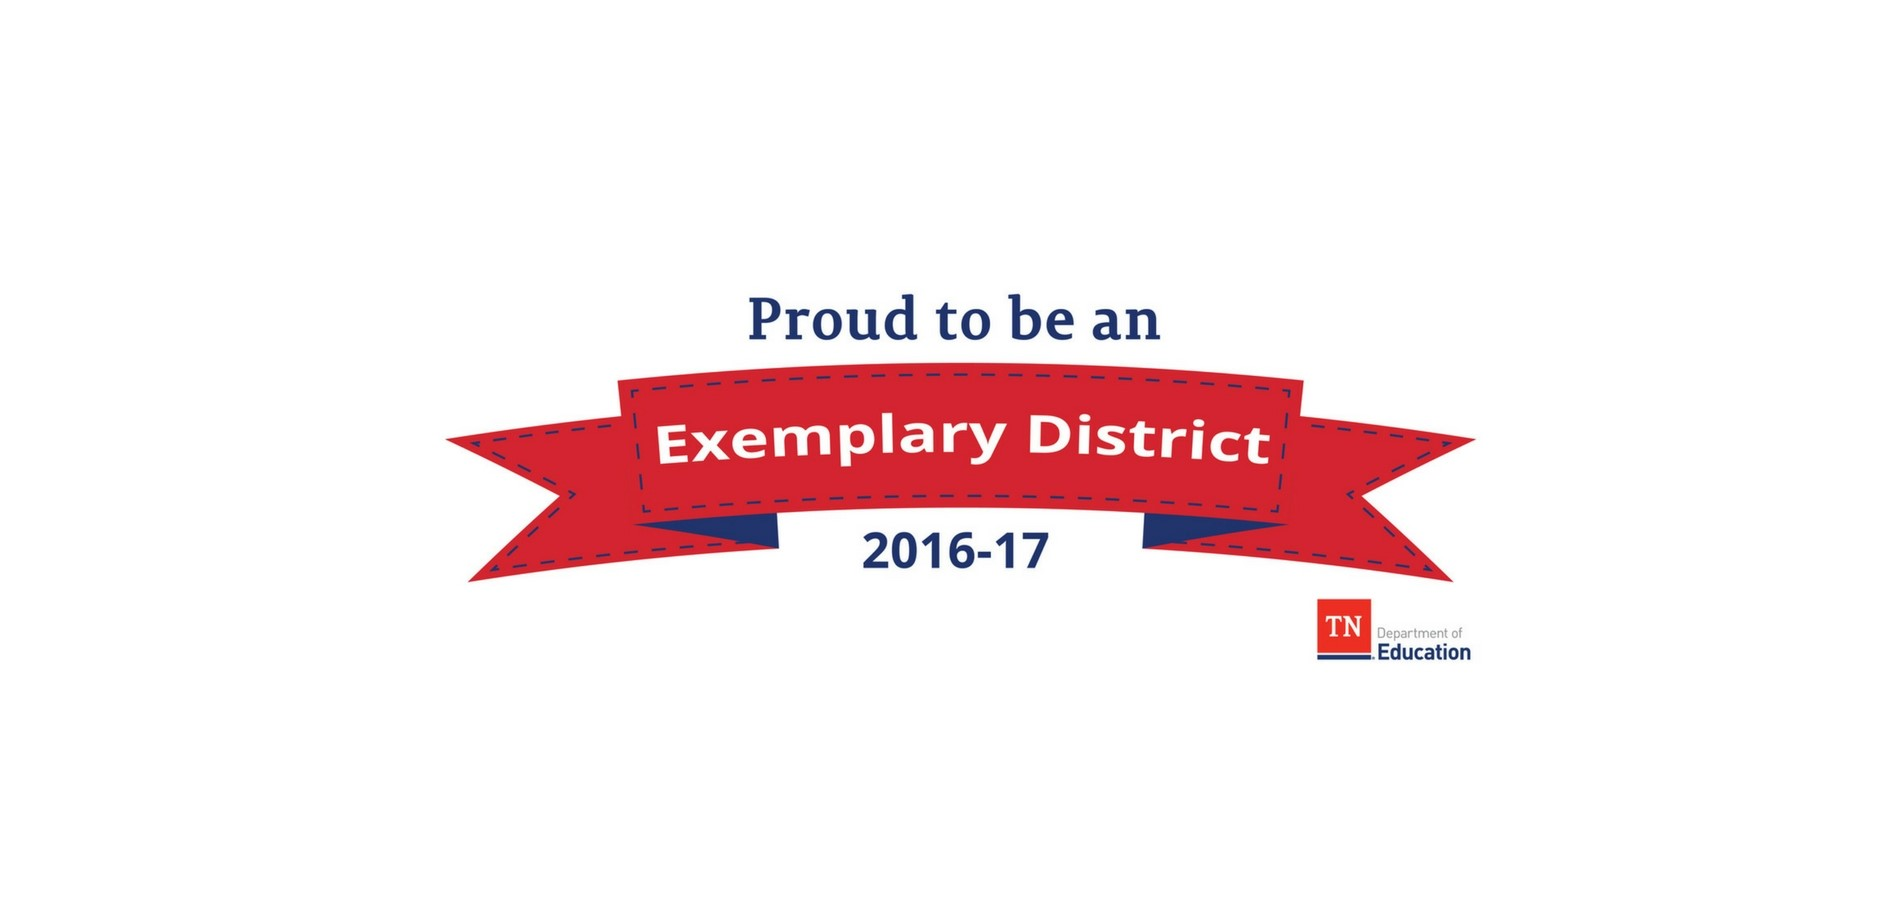 Proud to be an Exemplary School District